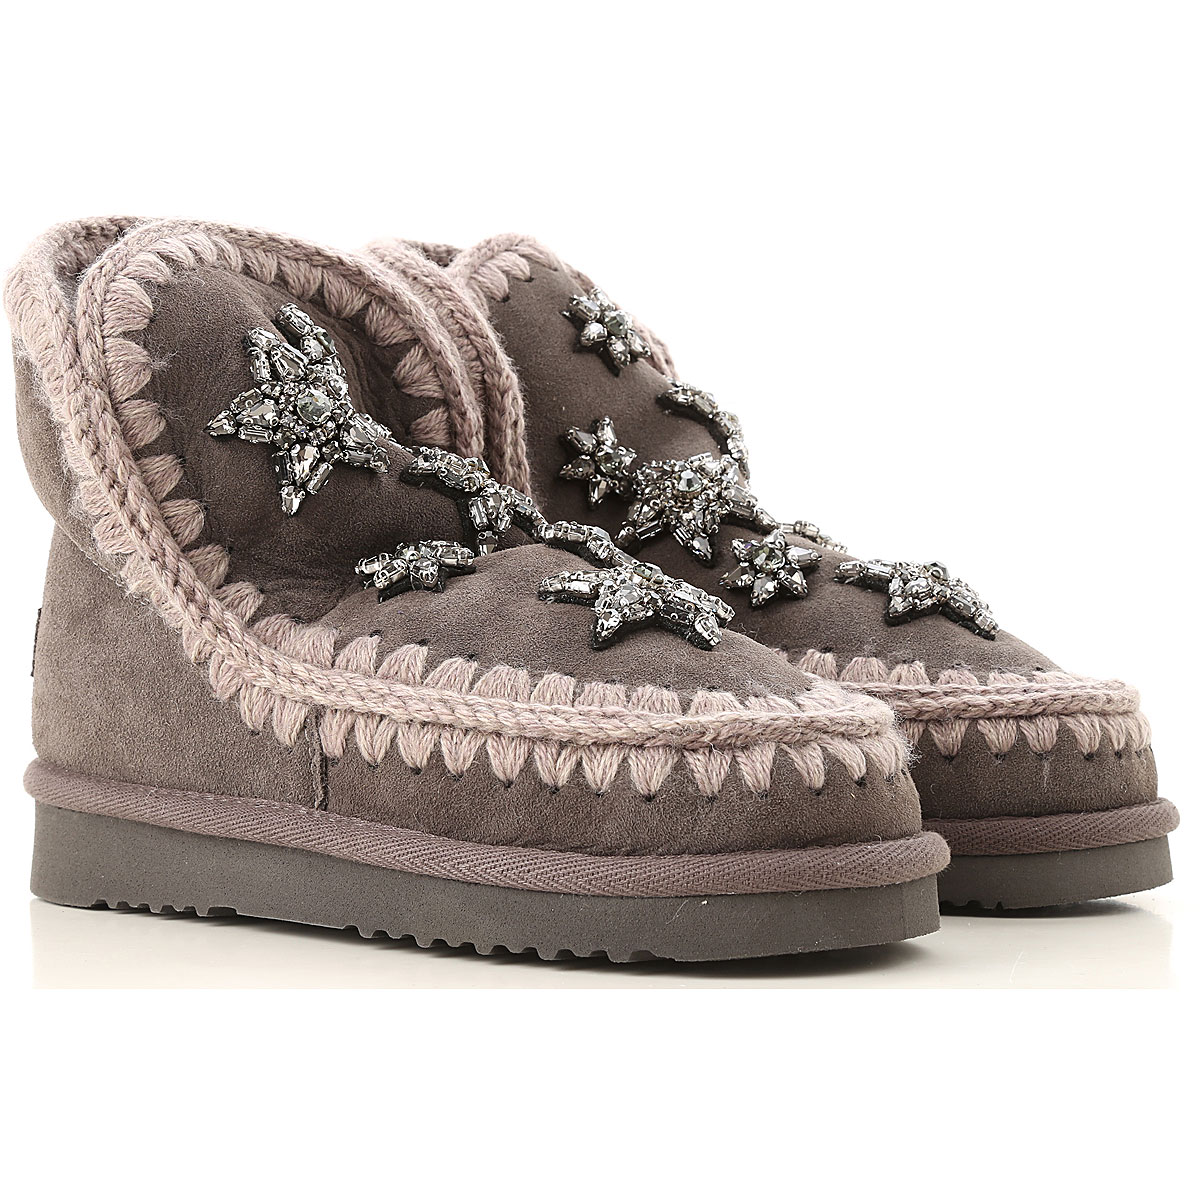 Image of Mou Boots for Women, Booties, Grey, suede, 2017, EUR 37 - UK 4 - USA 6.5 EUR 38 - UK 5 - USA 7.5